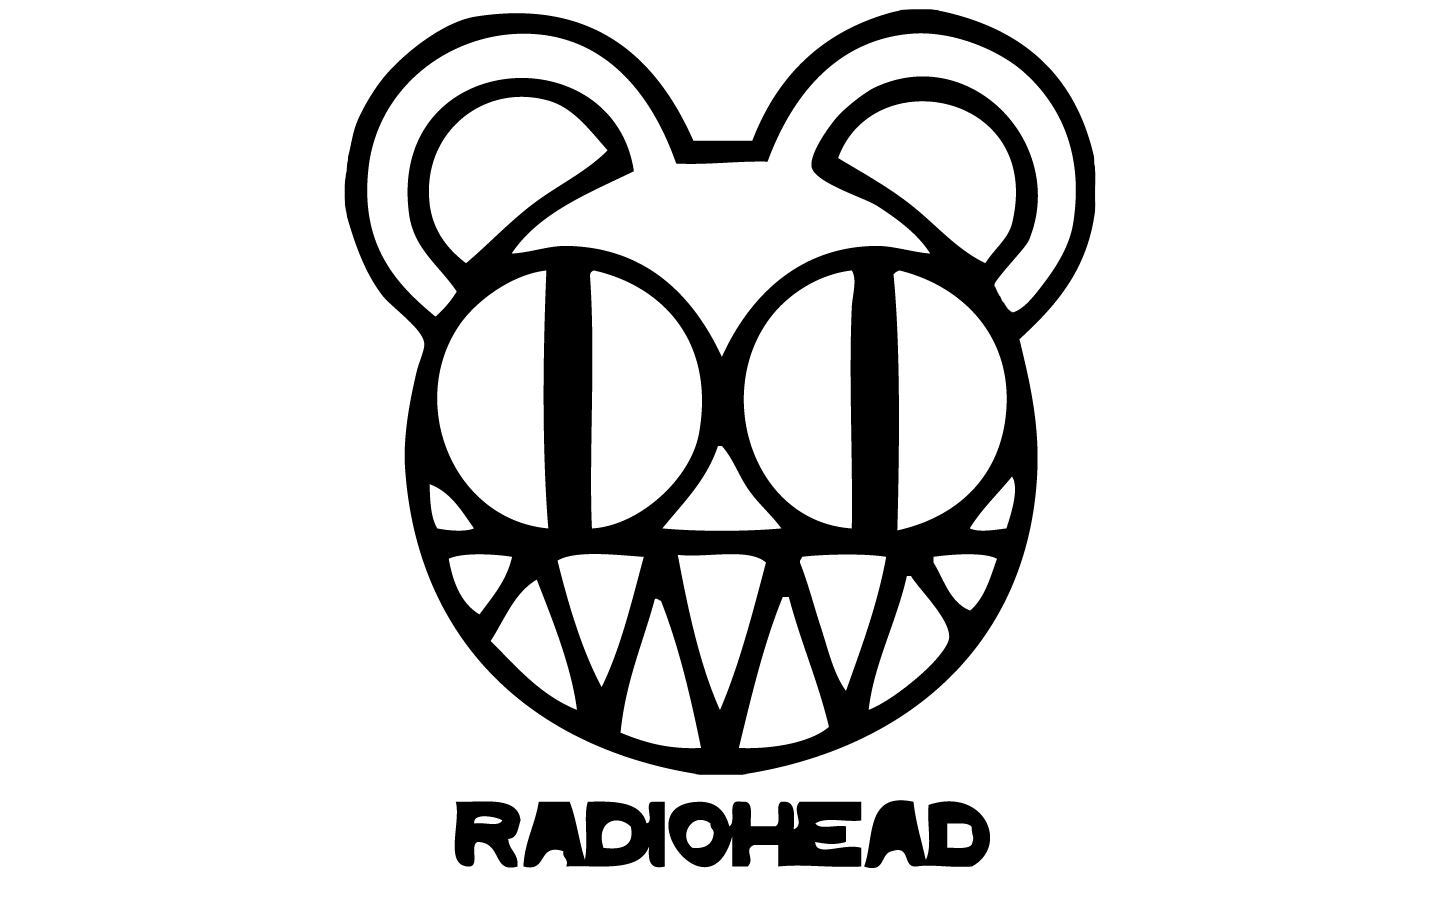 Music radiohead Music and HD Wallpaper